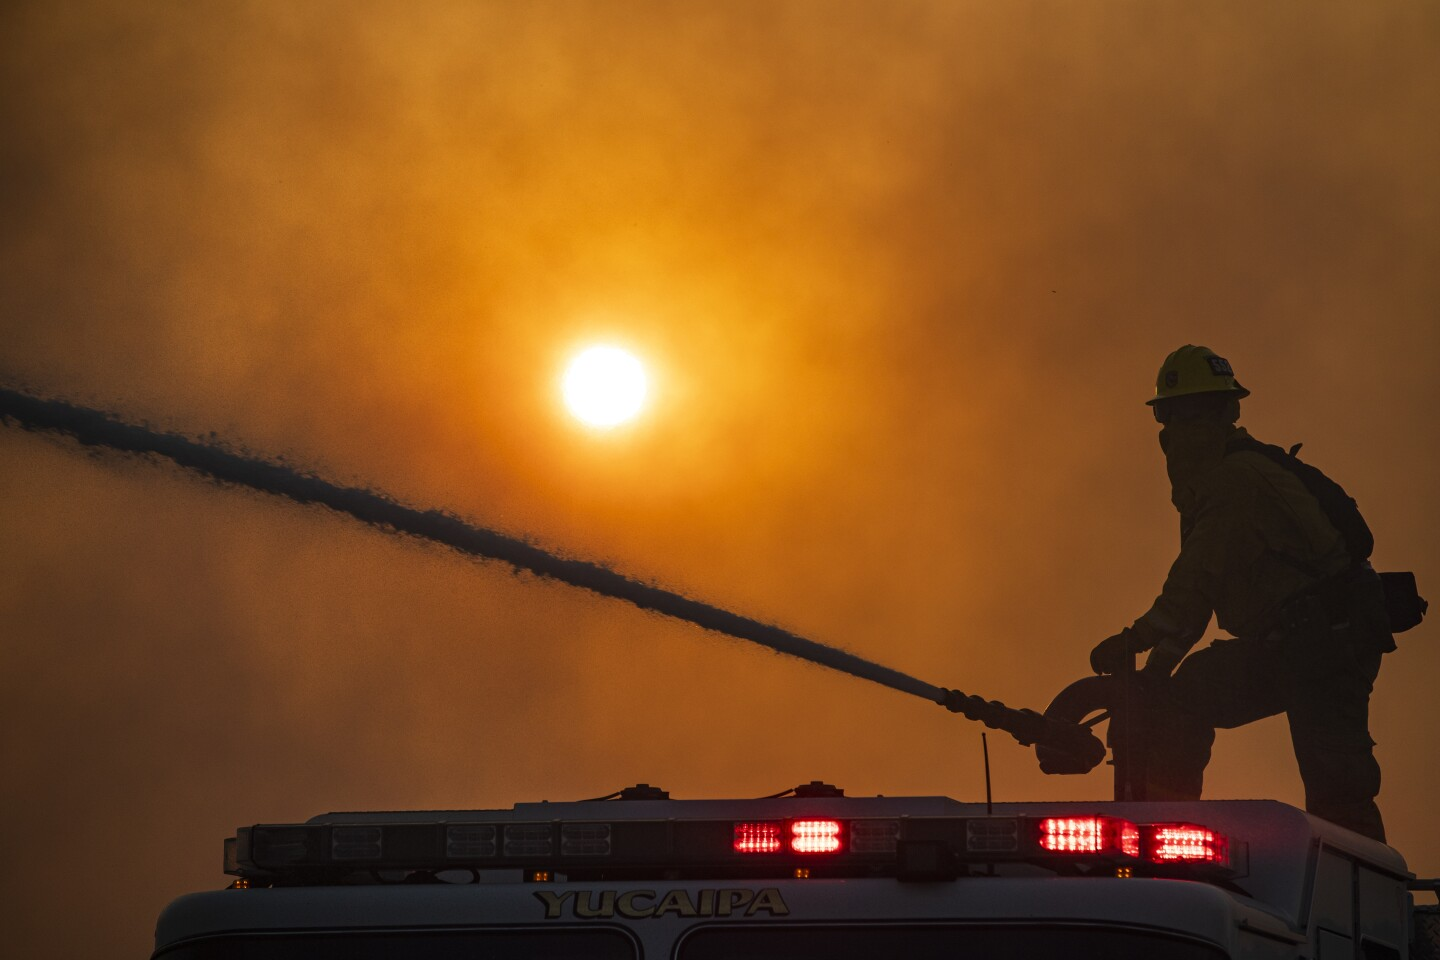 Santa Ana winds drive Inland Empire wildfires